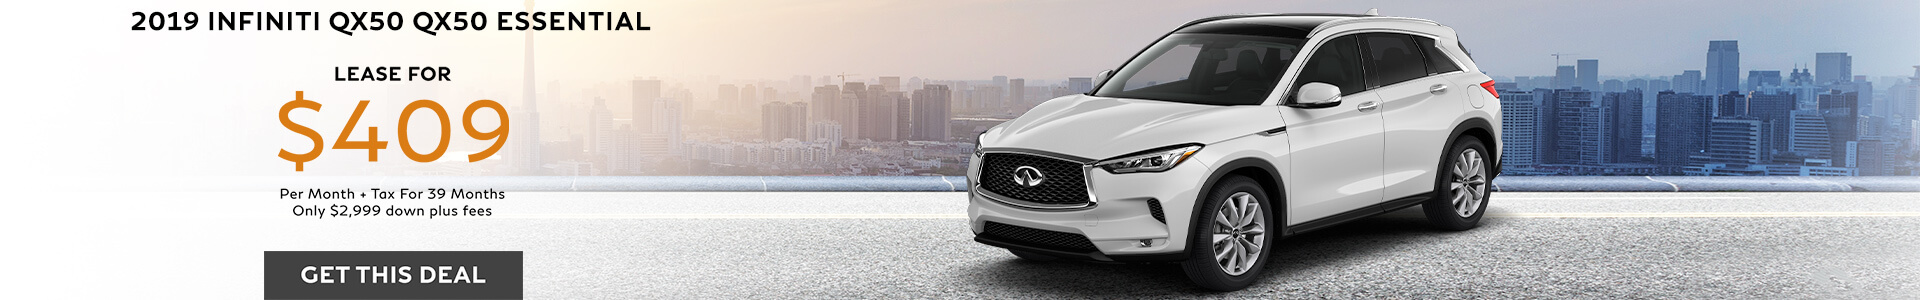 QX50 ESSENTIAL - Lease for $4099